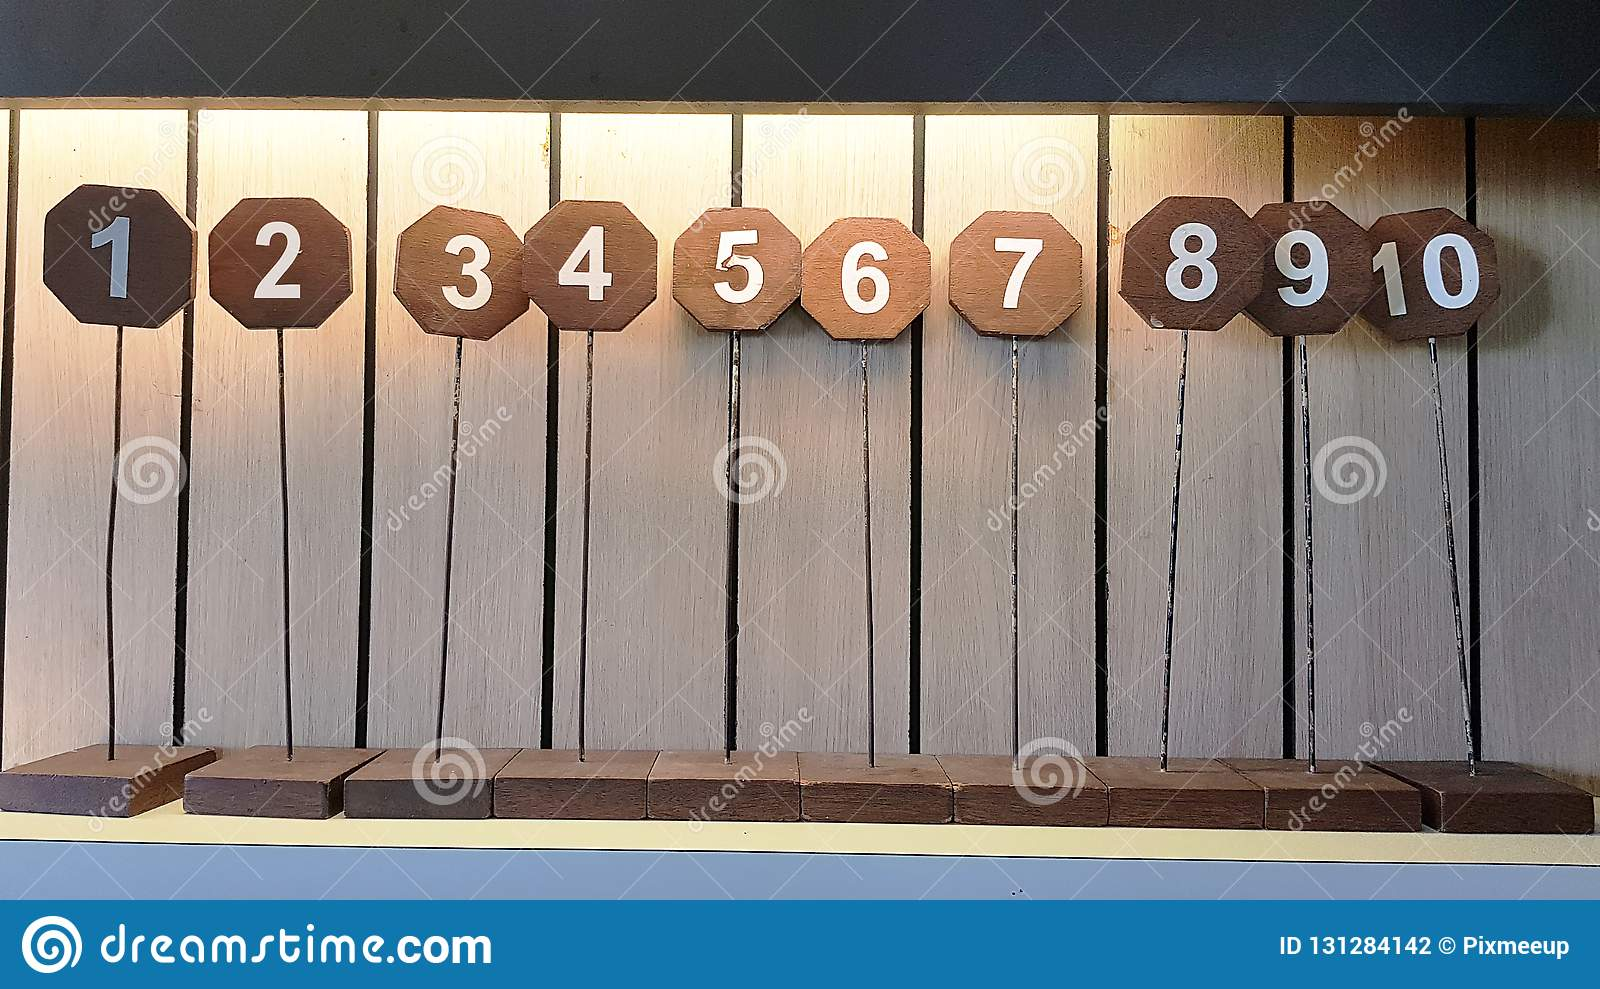 The Sign Of Table Numbers That Arrayed 1 To 10 On Shelve In The Restaurant Stock Photo Image Of Fashion Design 131284142